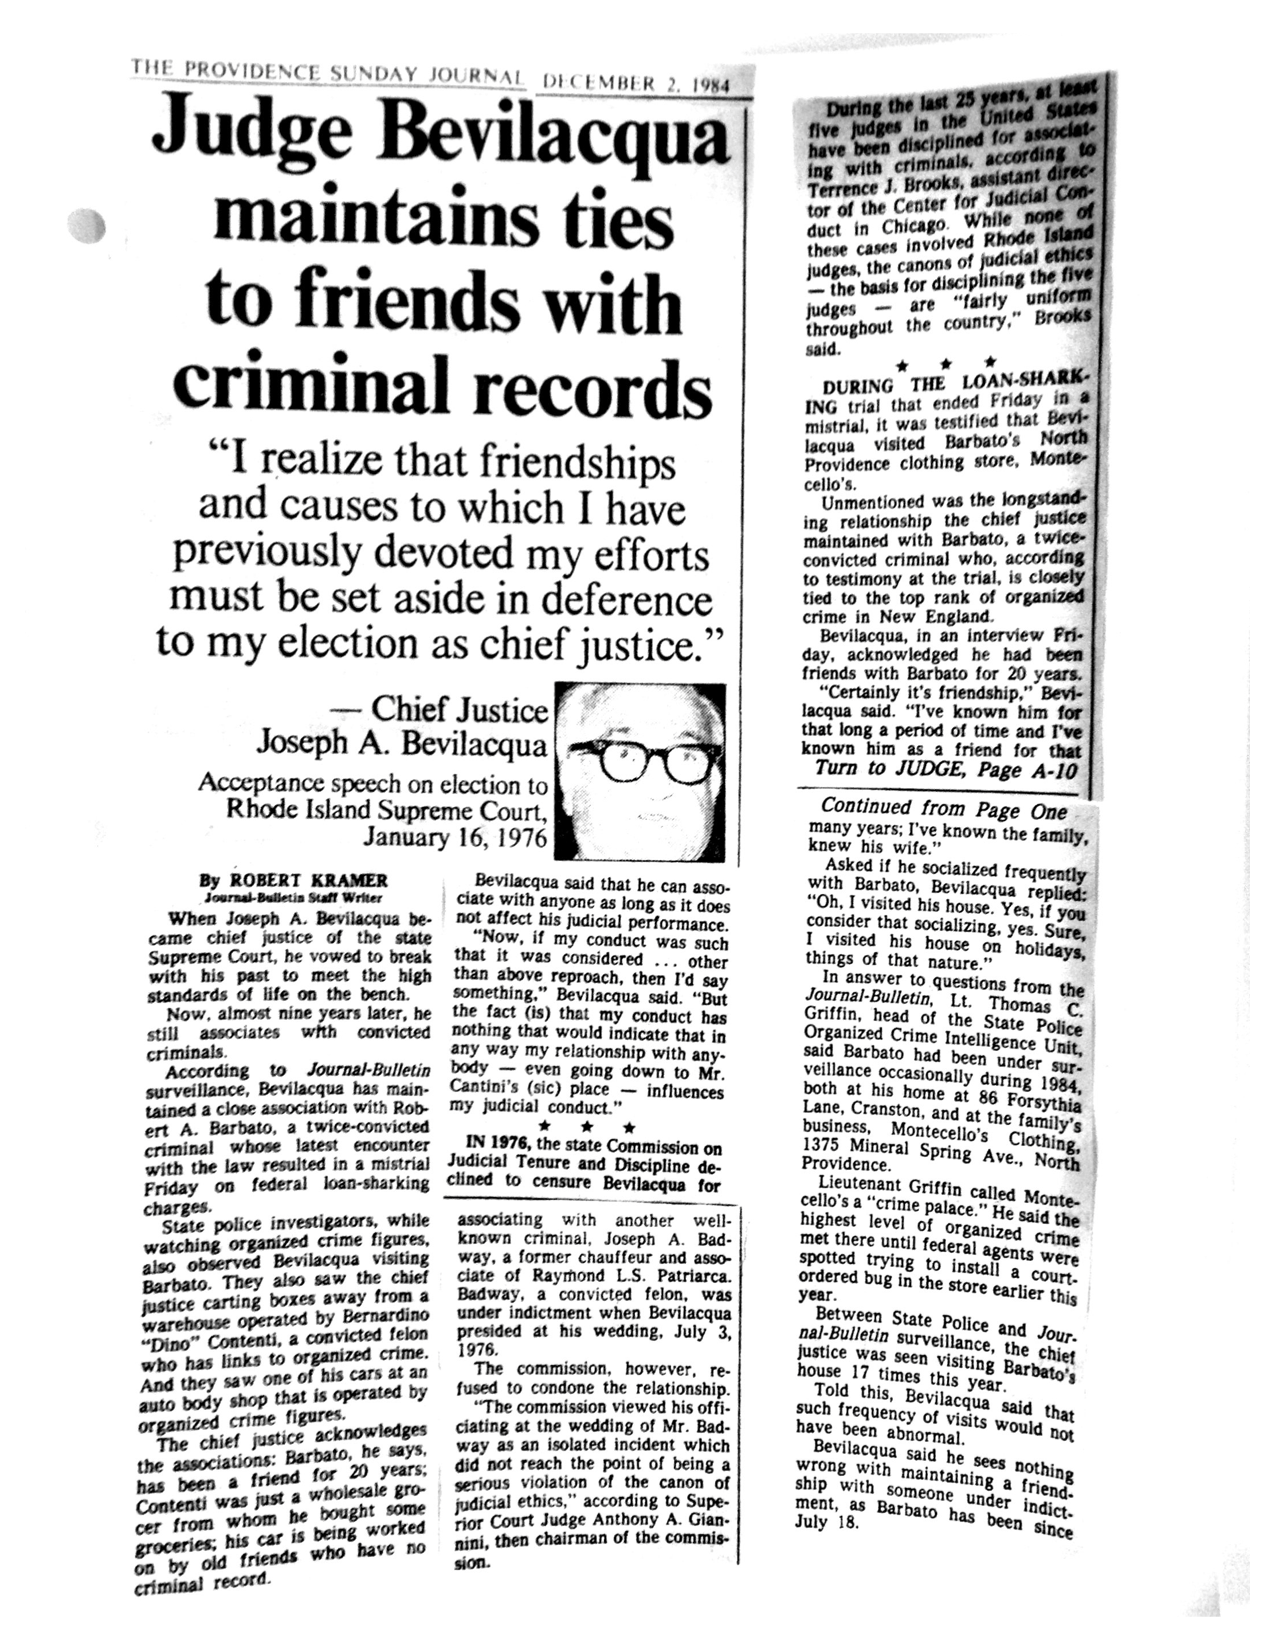 841202_ Judge Bevilacqua Maintains Ties to Friends With Criminal Records_1.png